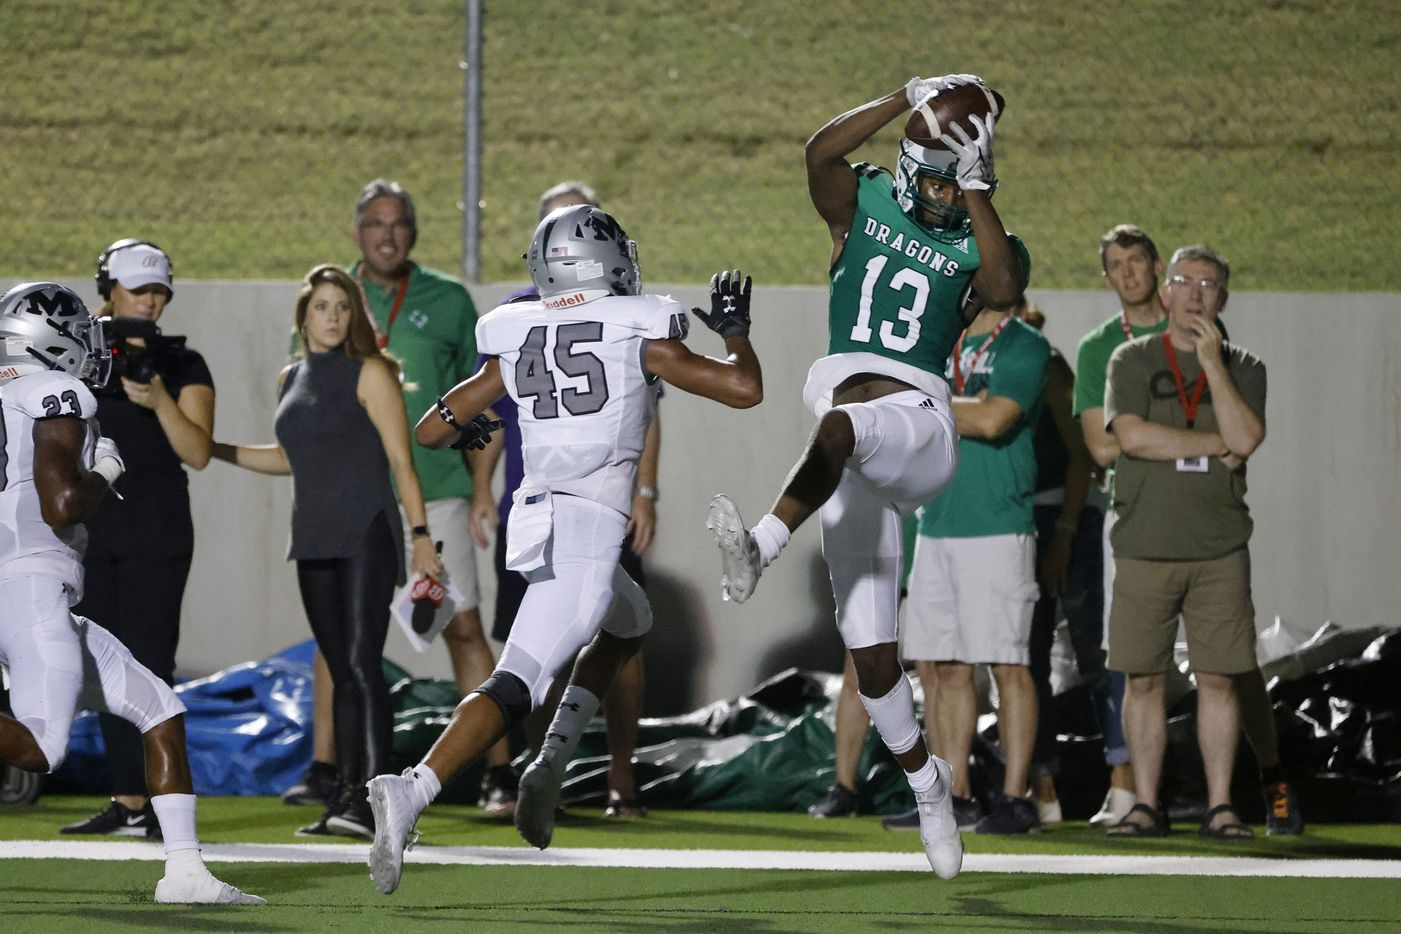 Southlake Carroll receiver RJ Maryland (13) catches a touchdown pass in front of Arlington Martin defender Cadynce Hall during a high school football game in Southlake, Texas on Friday, Sept. 17, 2021. (Michael Ainsworth/Special Contributor)